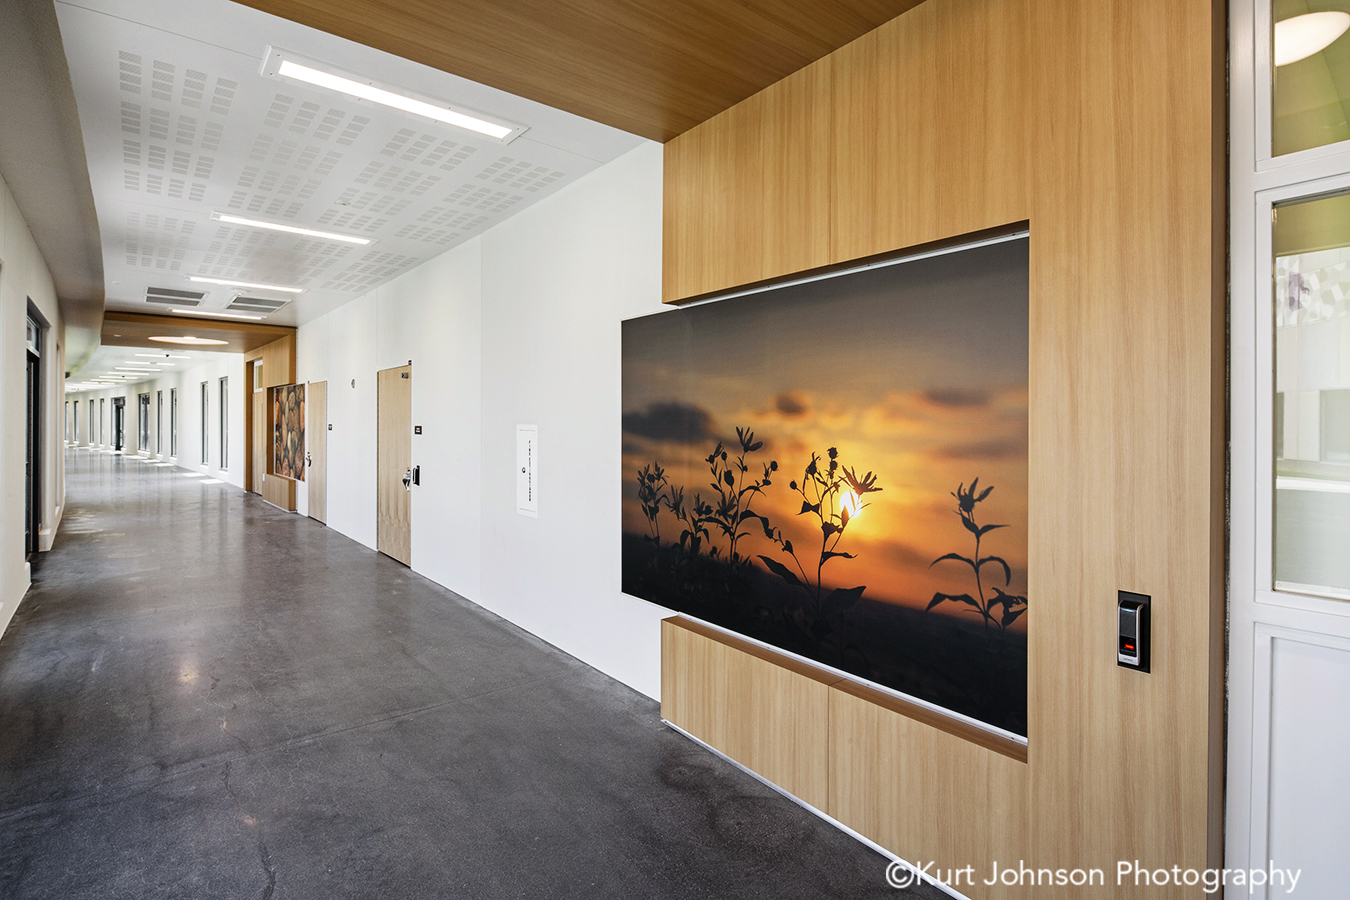 fulton state hospital missouri mo behavioral health Koroseal fusion wall protection orange yellow clouds landscape corridor hallway wayfinding art install installation